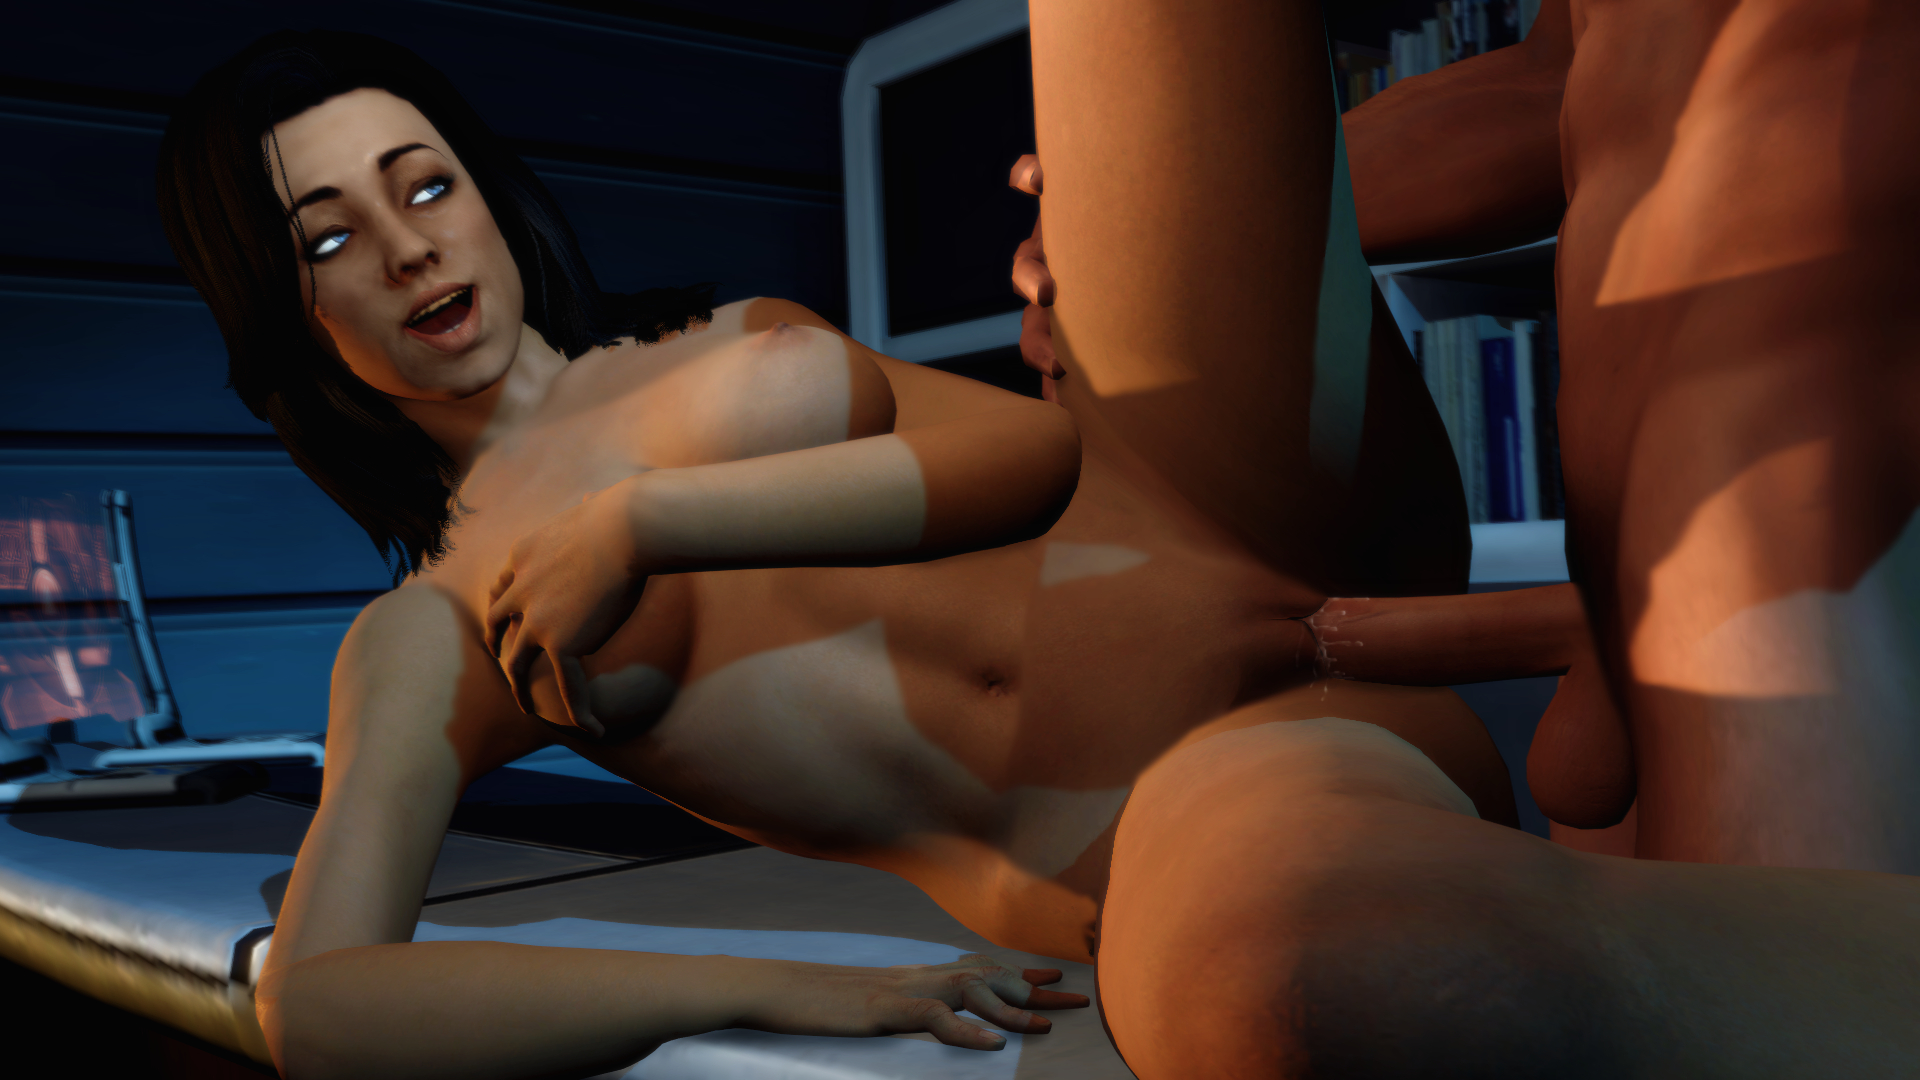 Mass effect porn mods erotica galleries